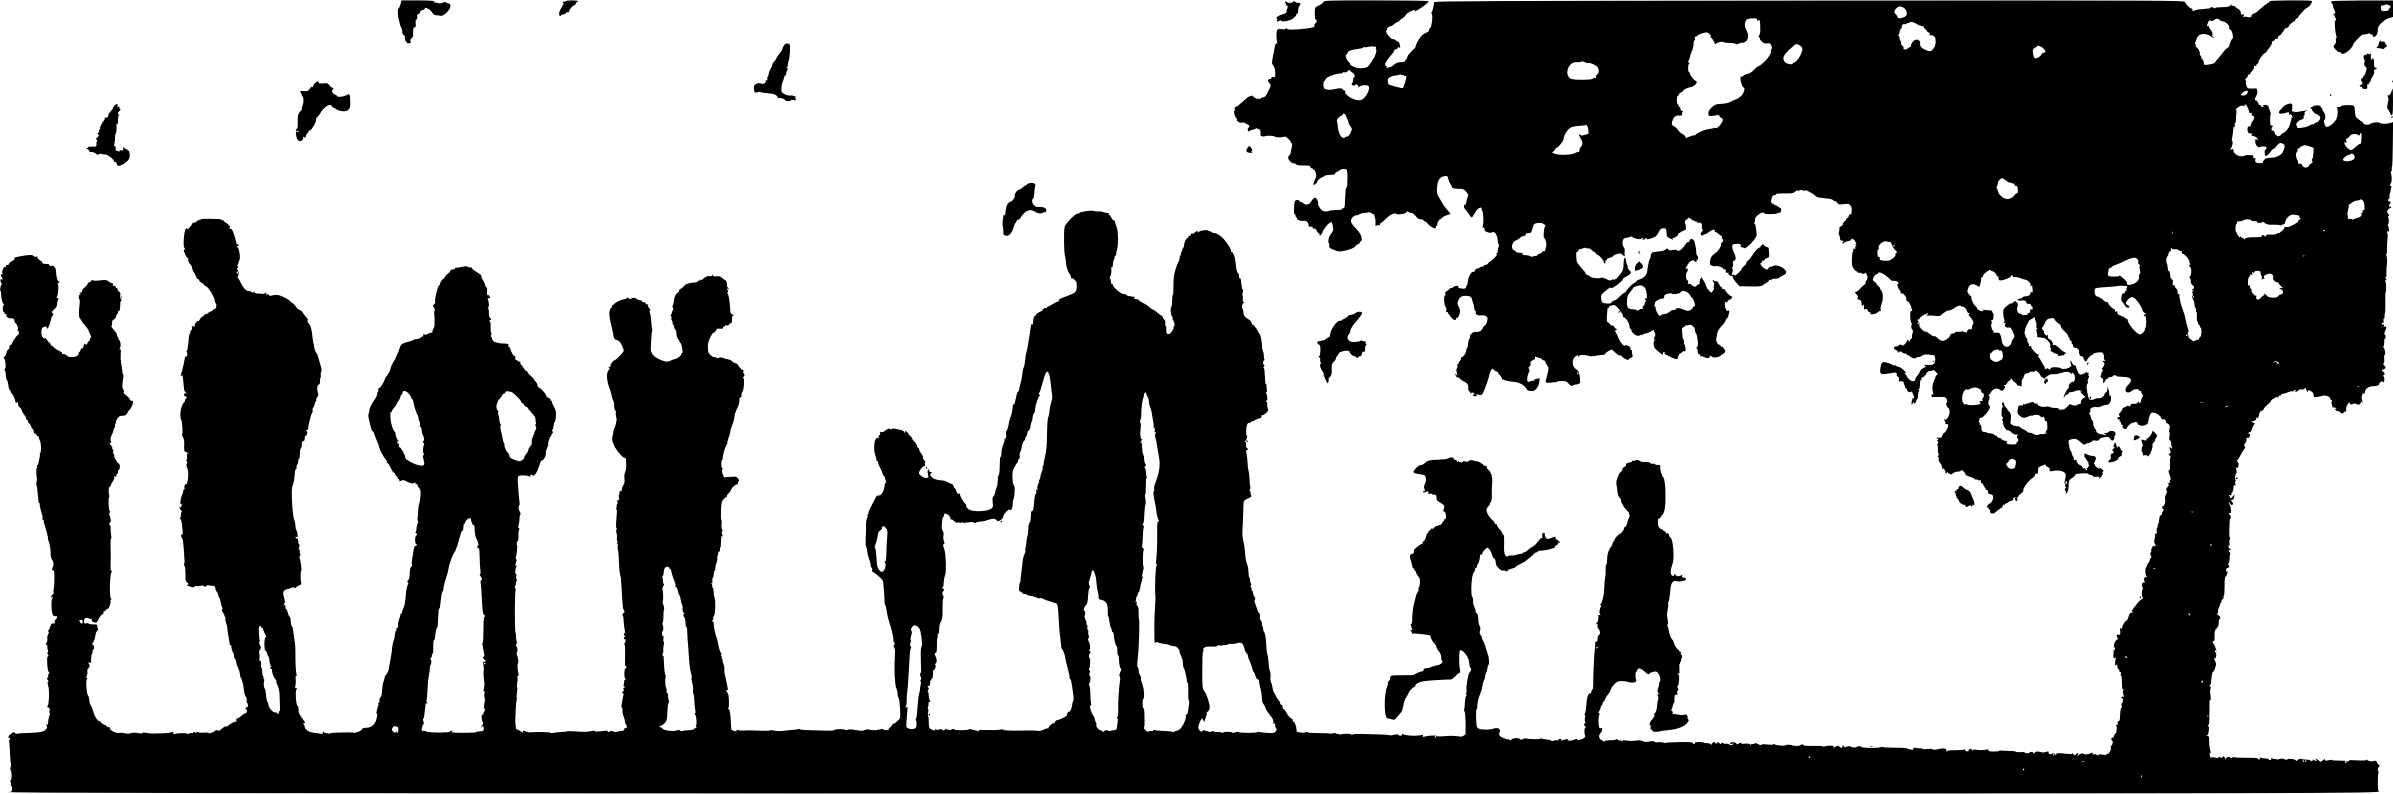 Family Picnic Silhouette Icons PNG